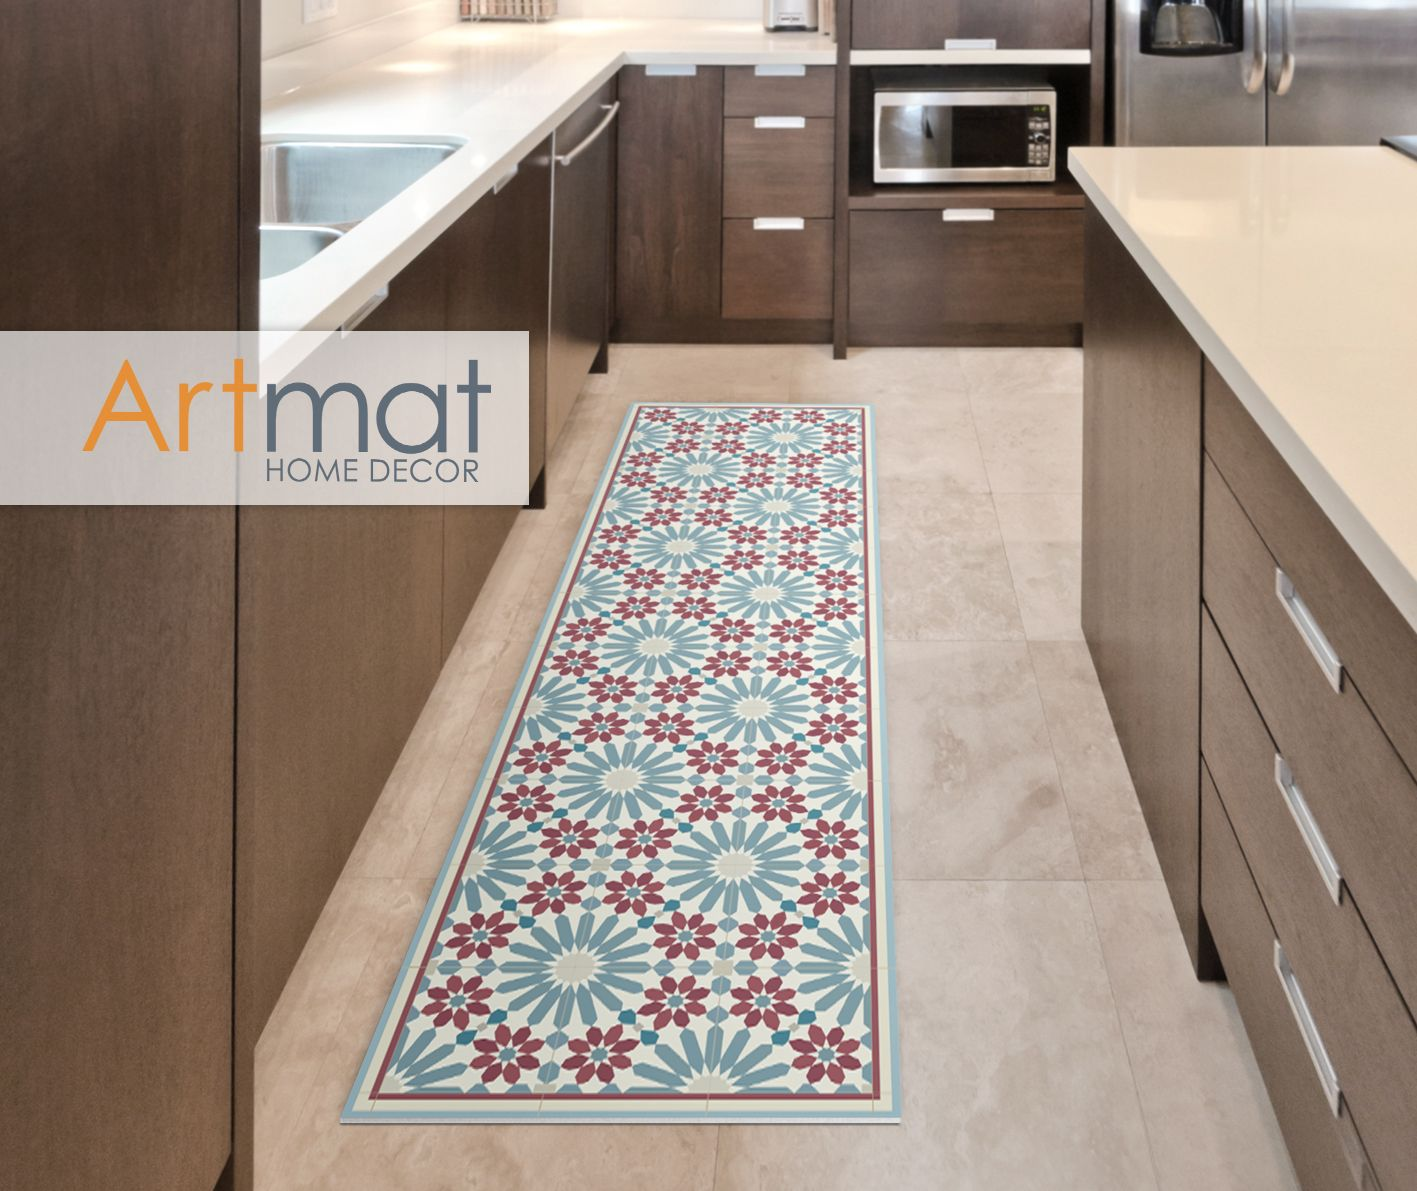 Pose Zellige Sans Joint vinyl runner rug with moroccan tiles in blue and red